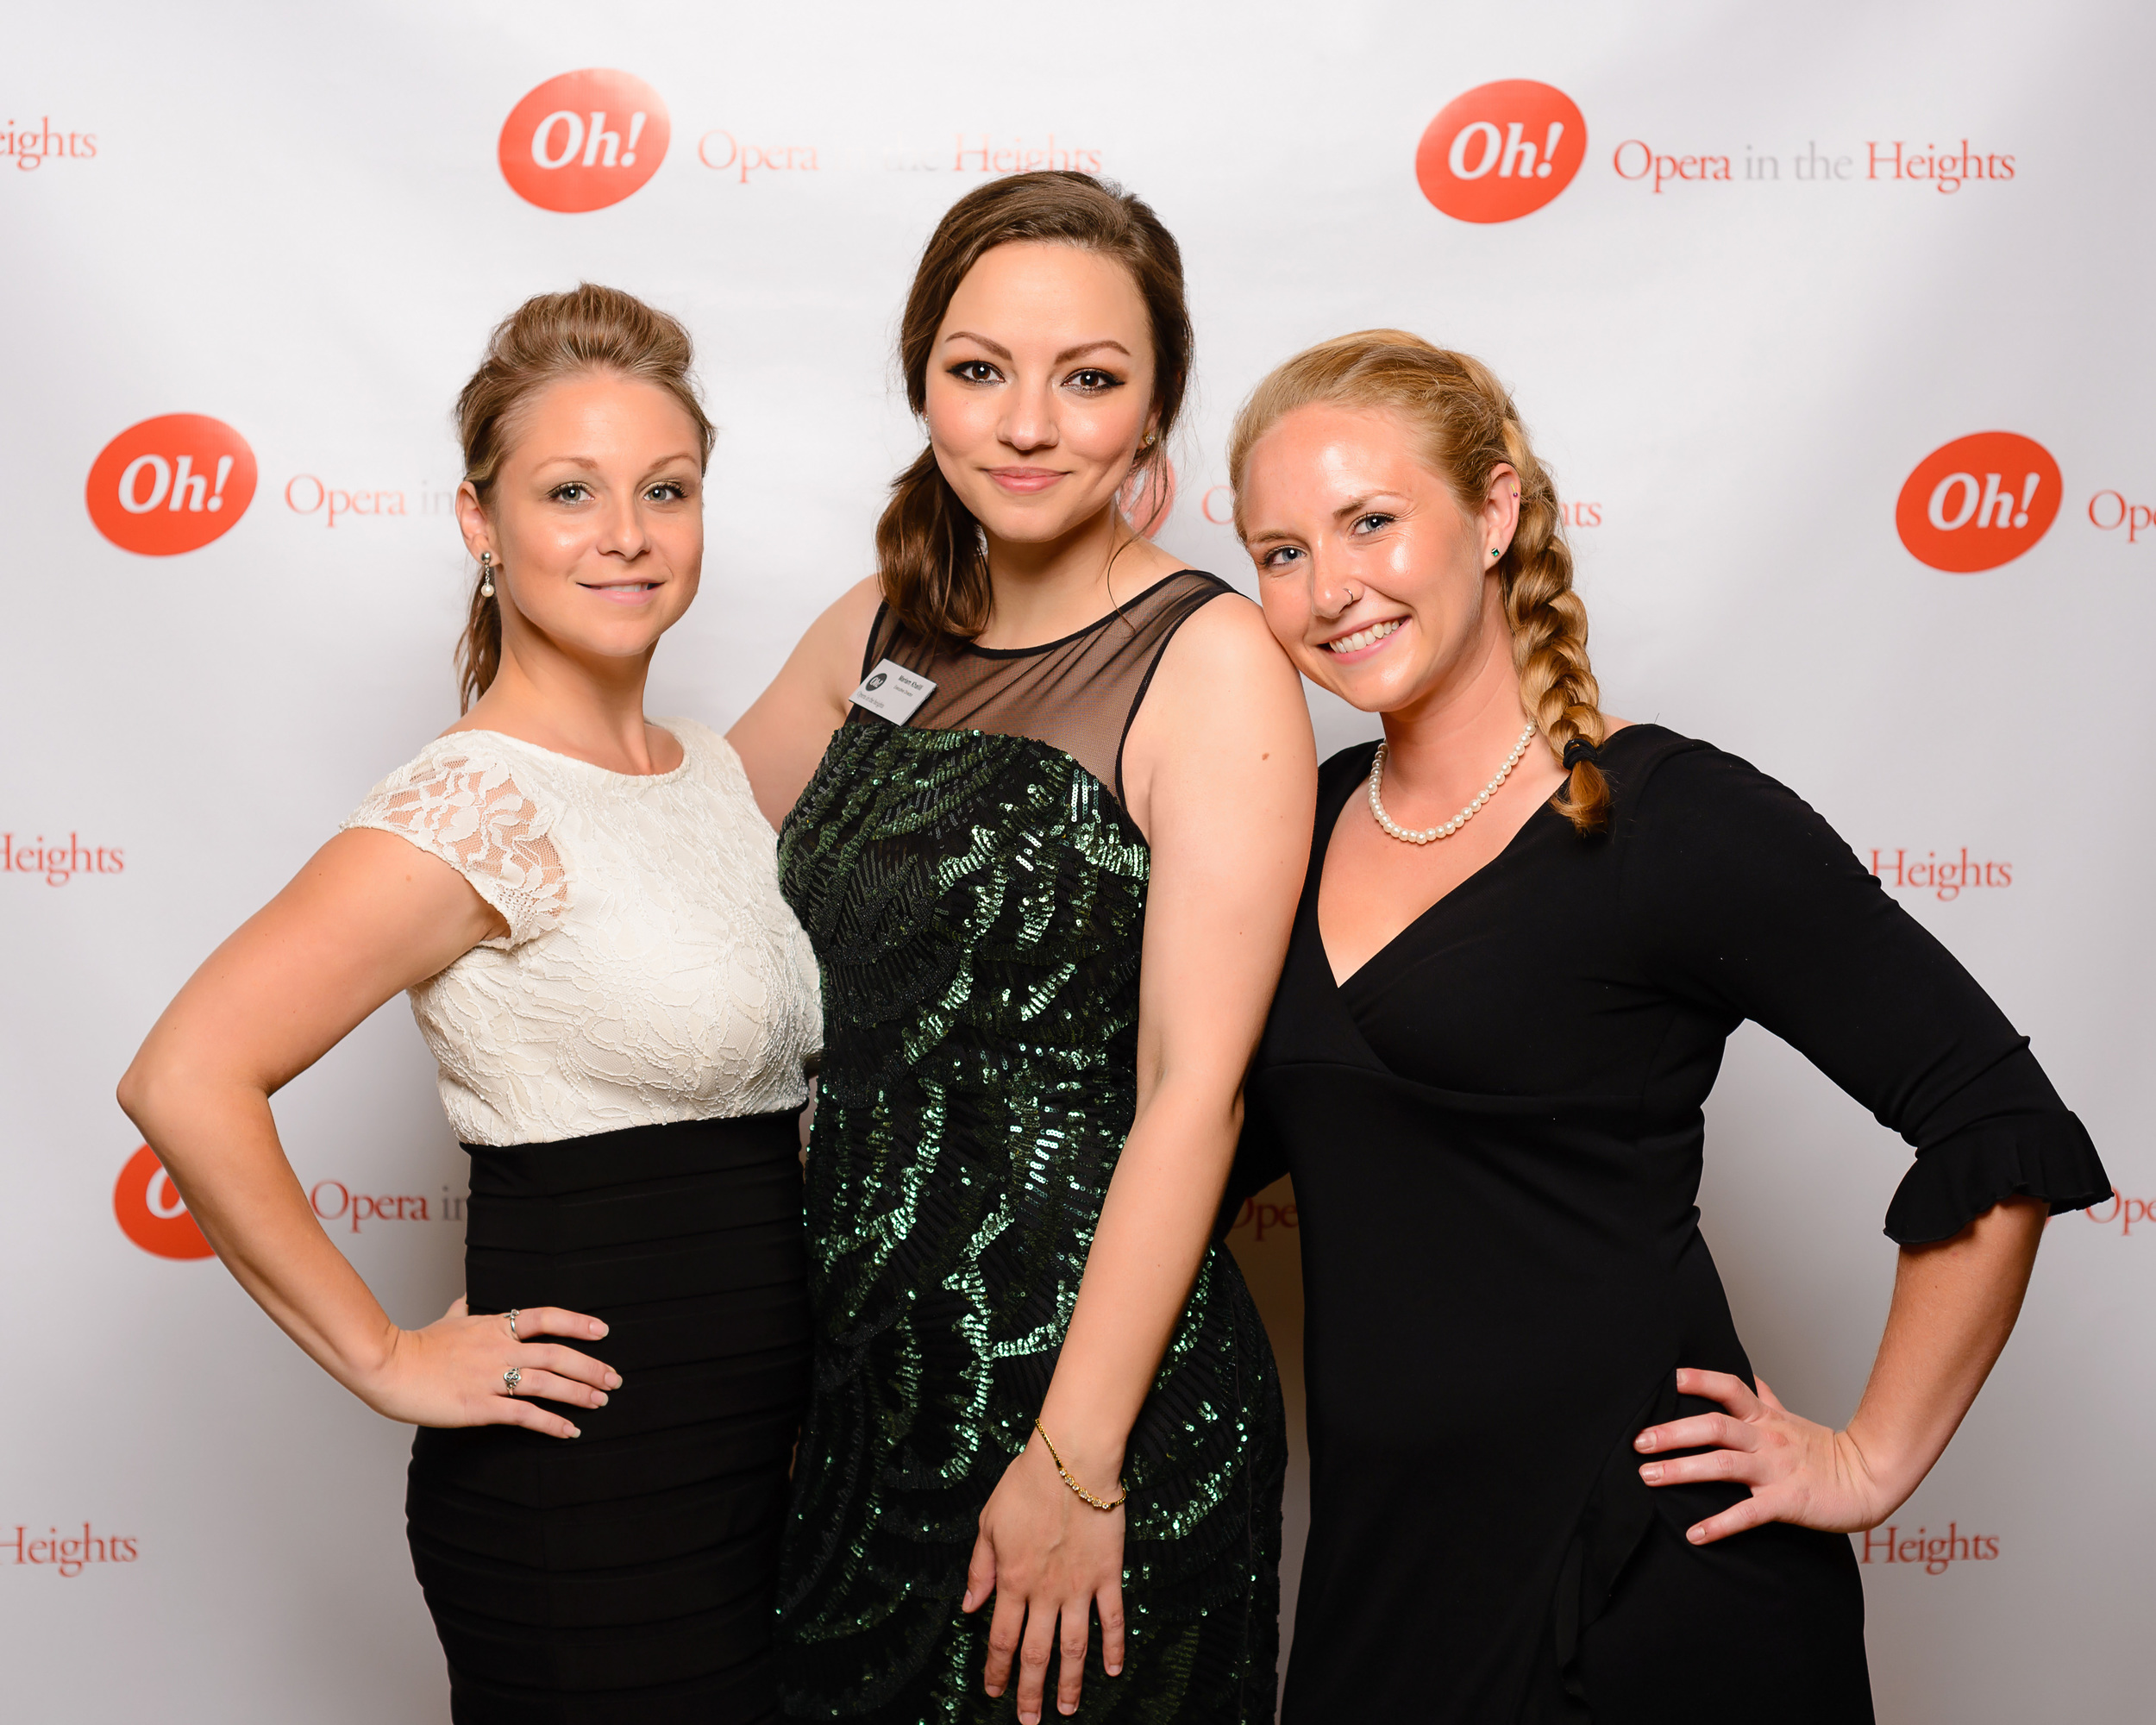 OITH_2016Gala_Background-Step-Repeat_HighRes_161_3974.jpg